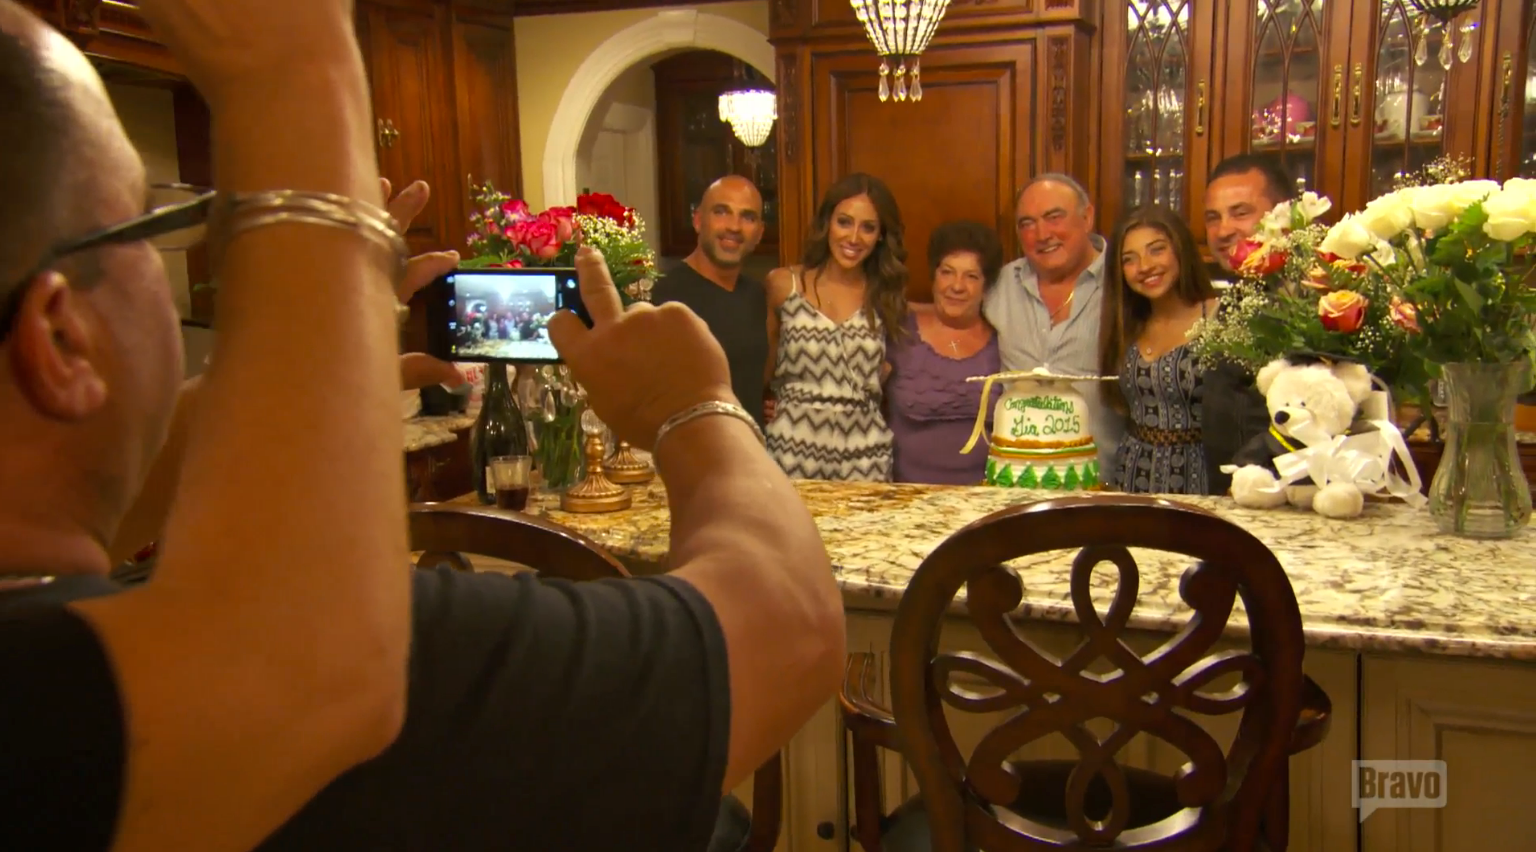 teresa-checks-in-giudice-gorga-peace